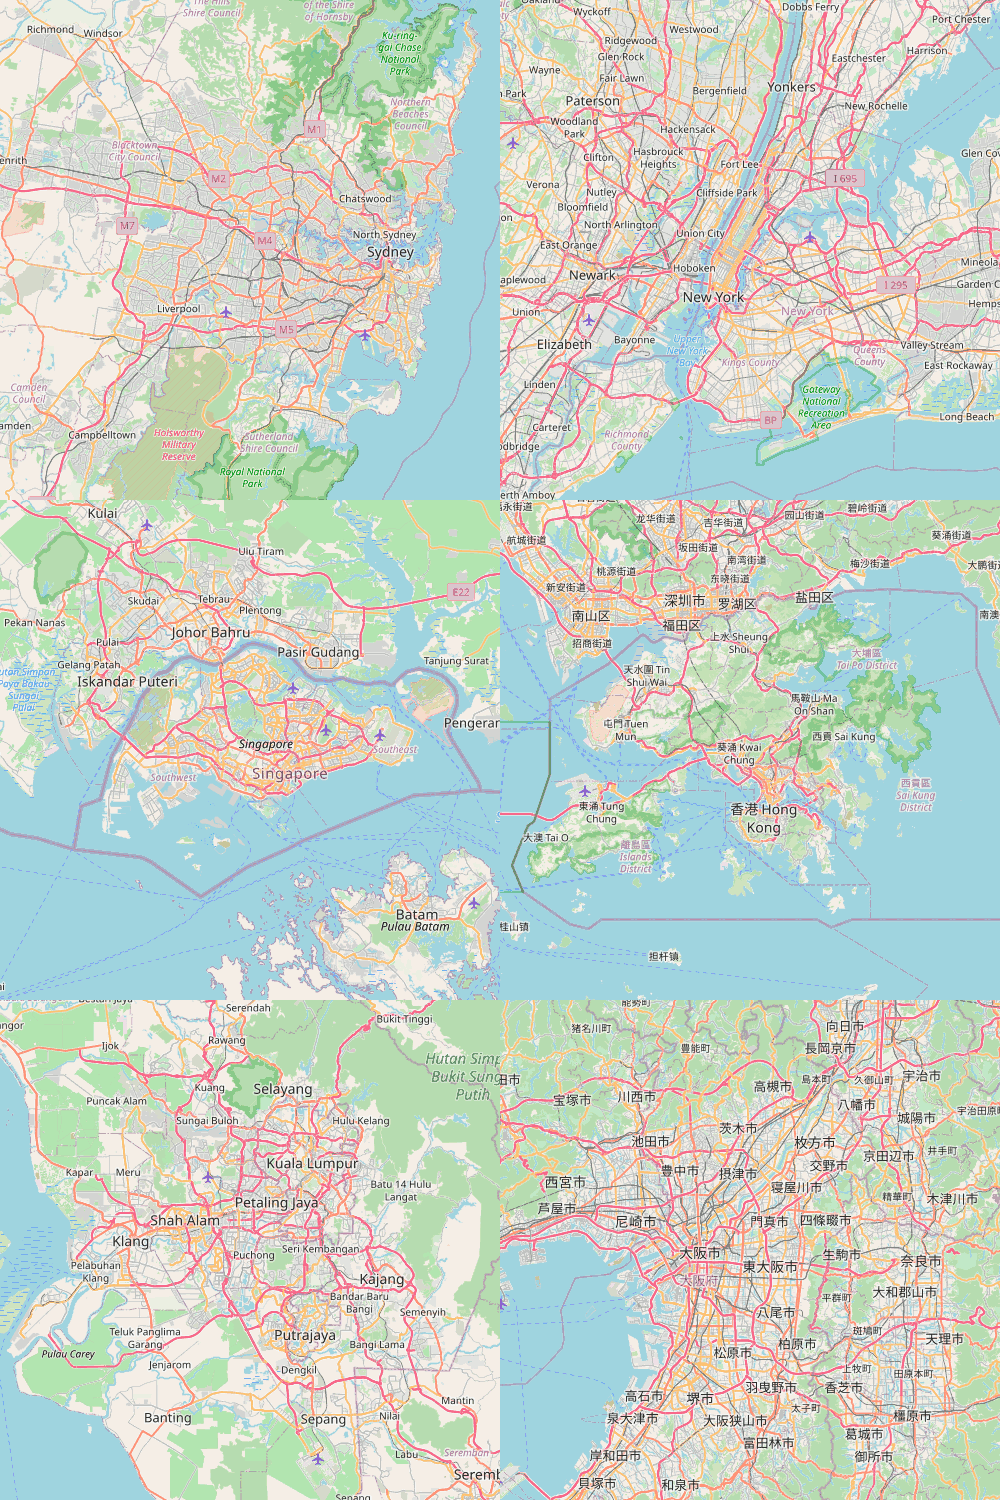 Maps showing cities listed above.